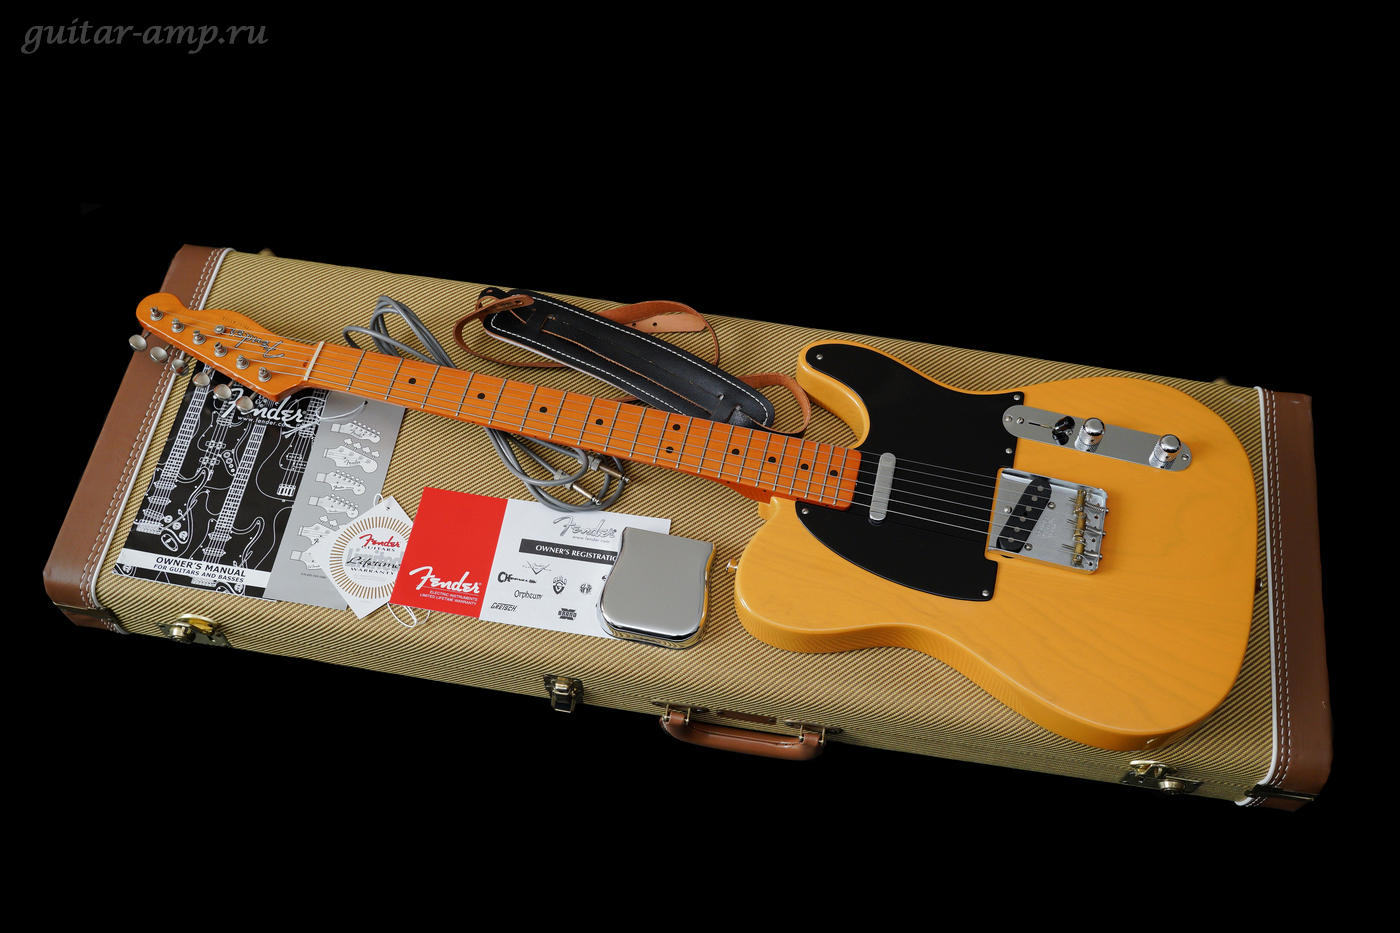 Fender American Vintage Telecaster 1952 Reissue Butterscotch Blonde All Original 1998 001a_garx1400.jpg